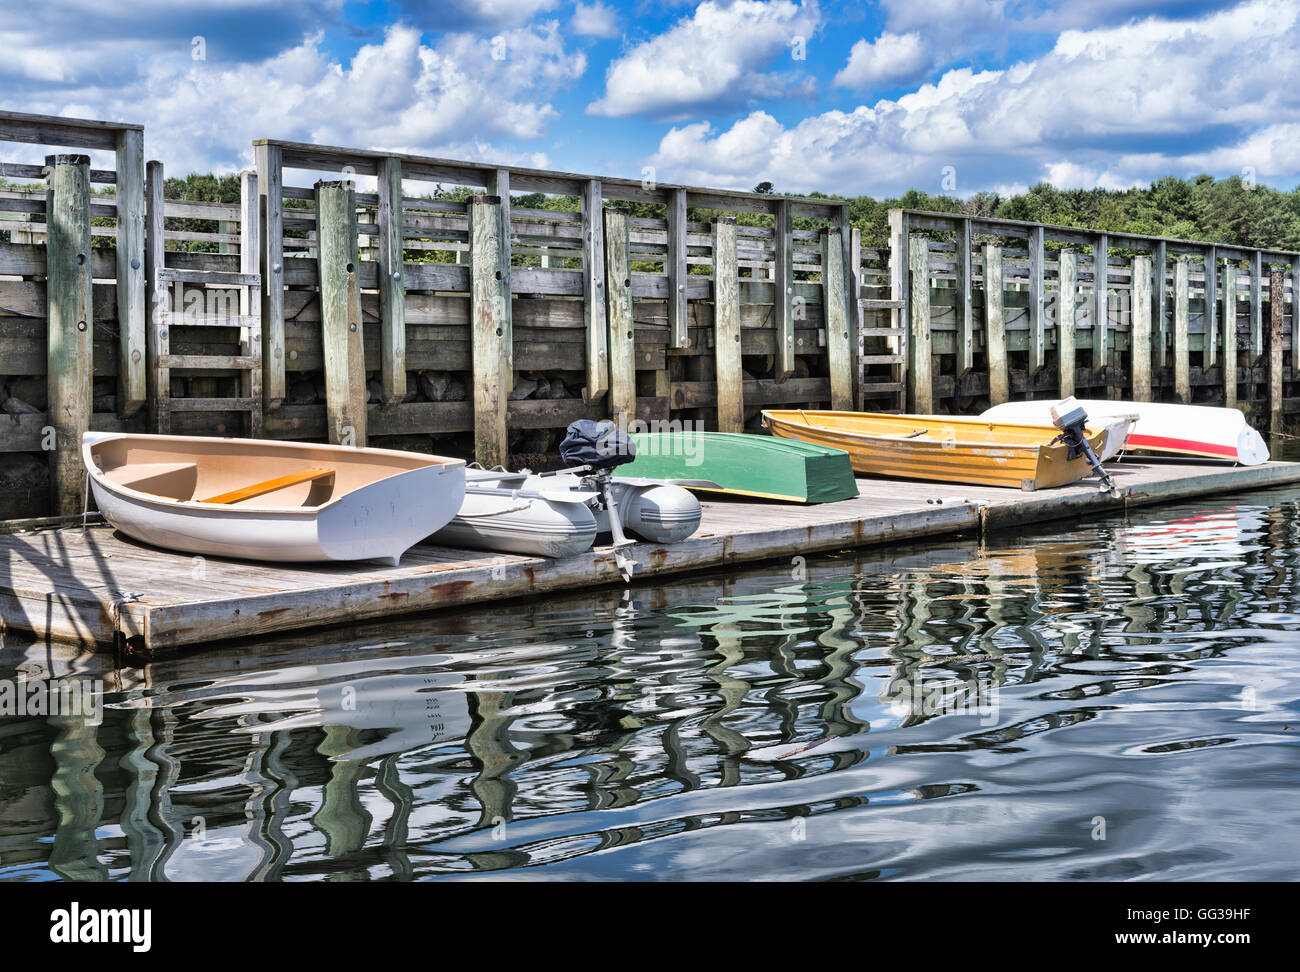 Several wood and rubber skiffs with motors on a floating dock at Searsport, Maine - Stock Image